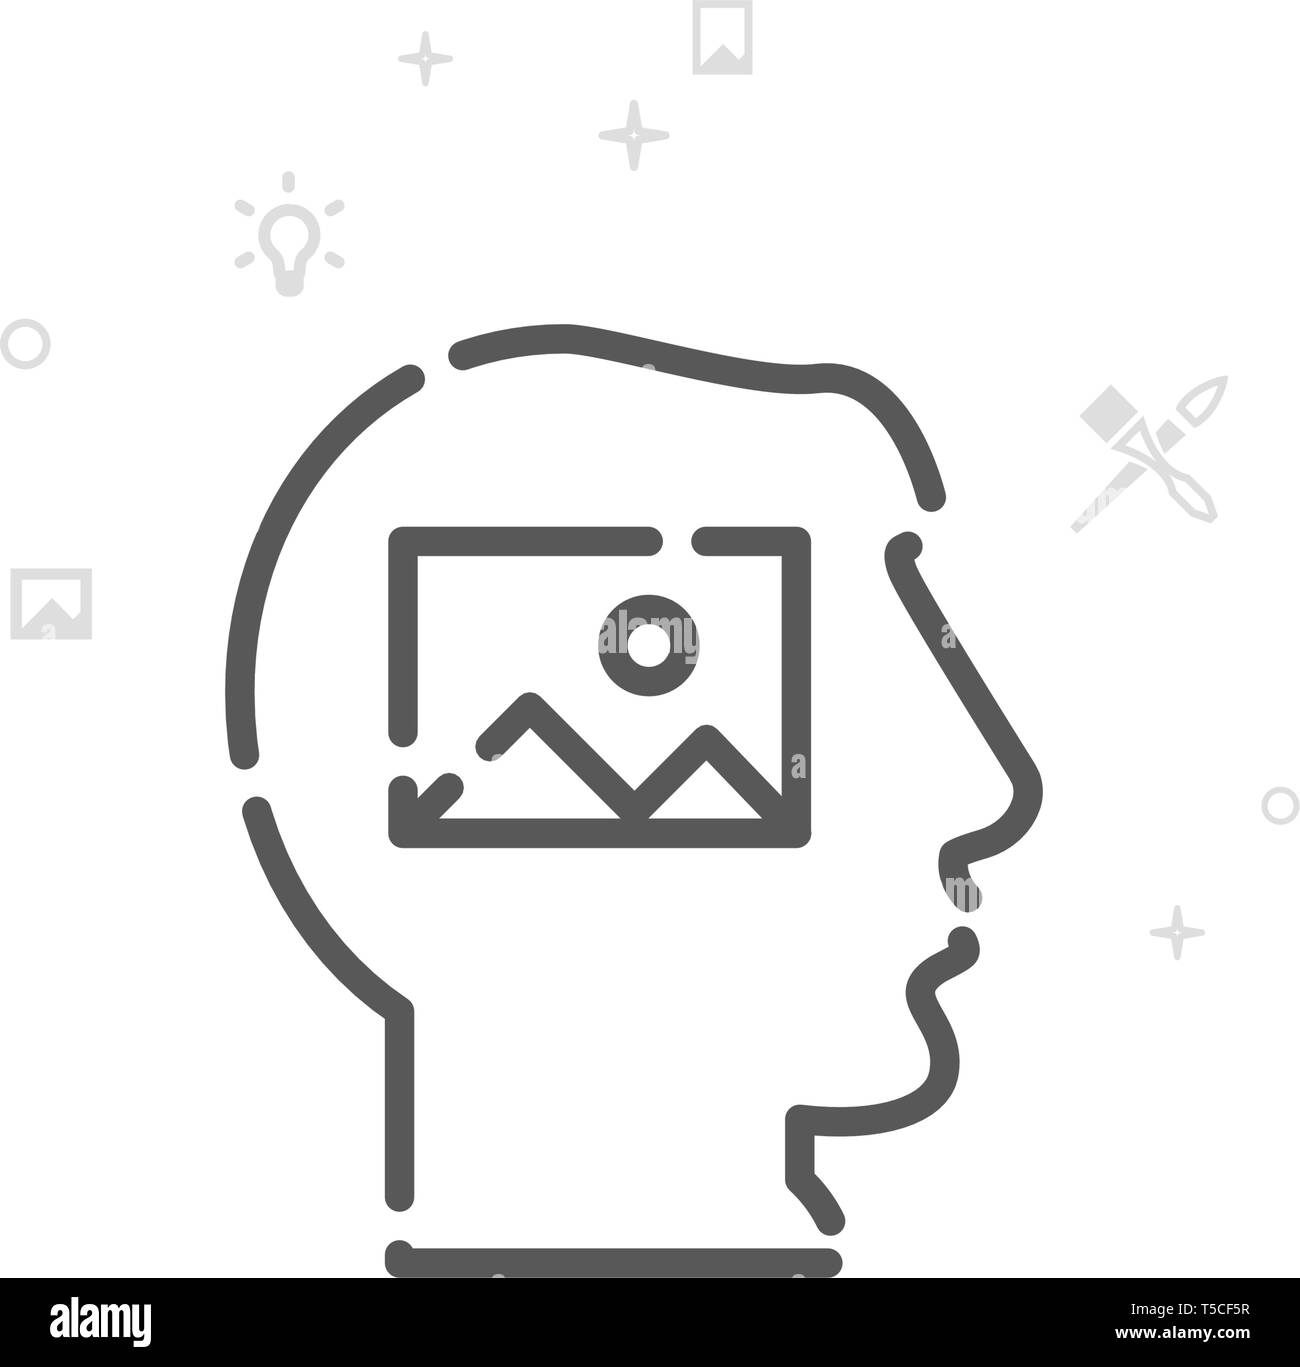 Visualize Vector Line Icon, Symbol, Pictogram, Sign. Light Abstract Geometric Background. Editable Stroke - Stock Image